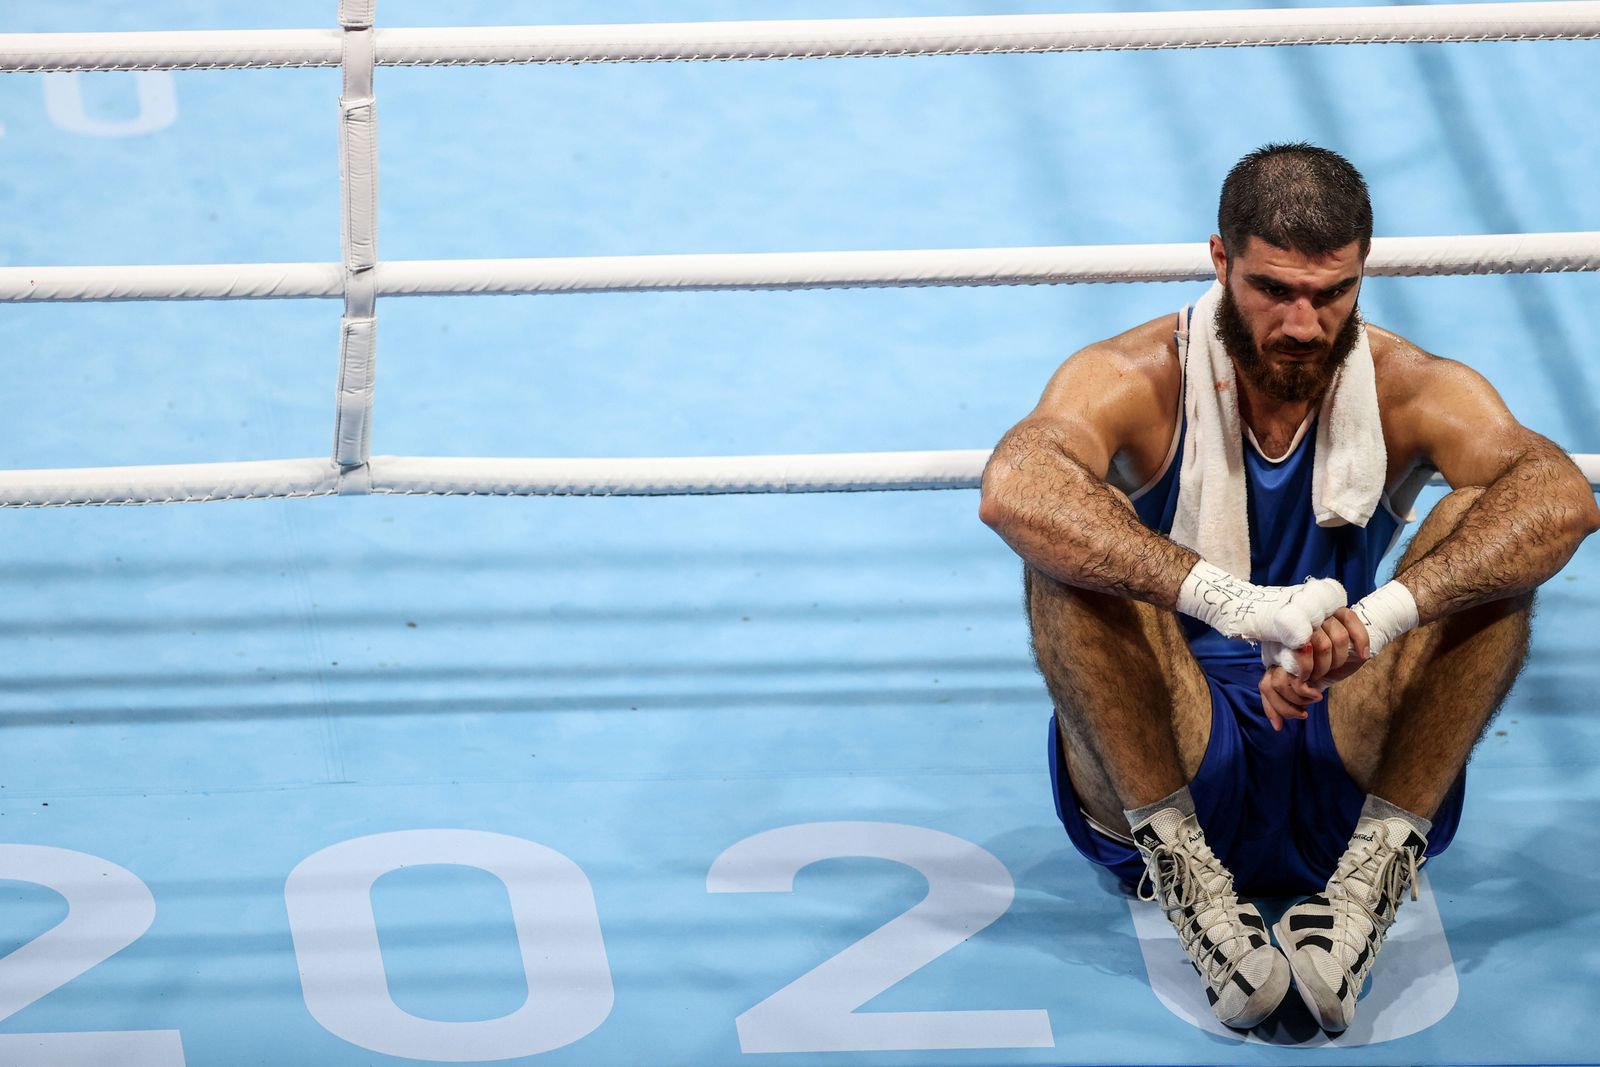 (210801) -- TOKYO, Aug. 1, 2021 -- Mourad Aliev of France sits outside the ring in protest after the referee stopped his